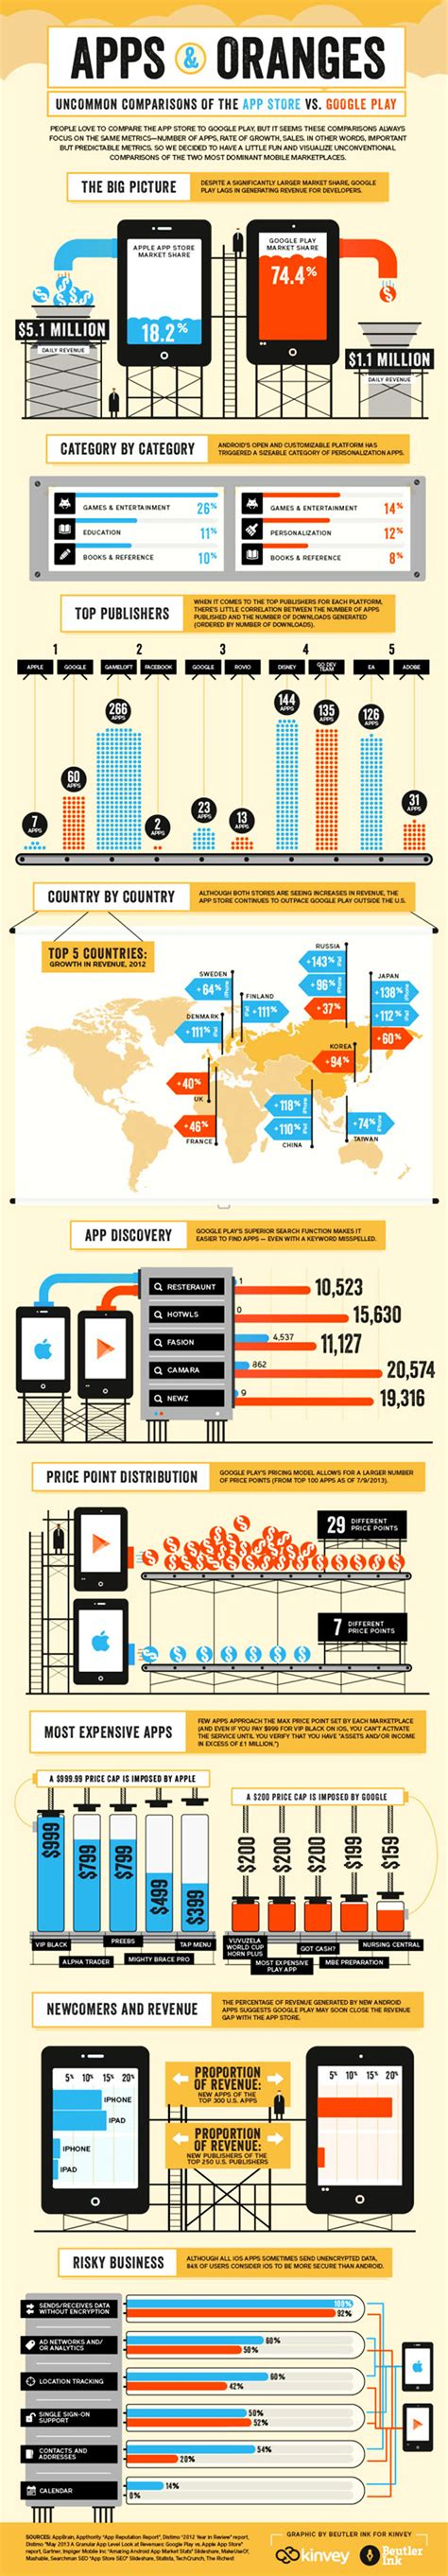 Play Store Vs Istore Apple App Store Vs Play Store Infographic